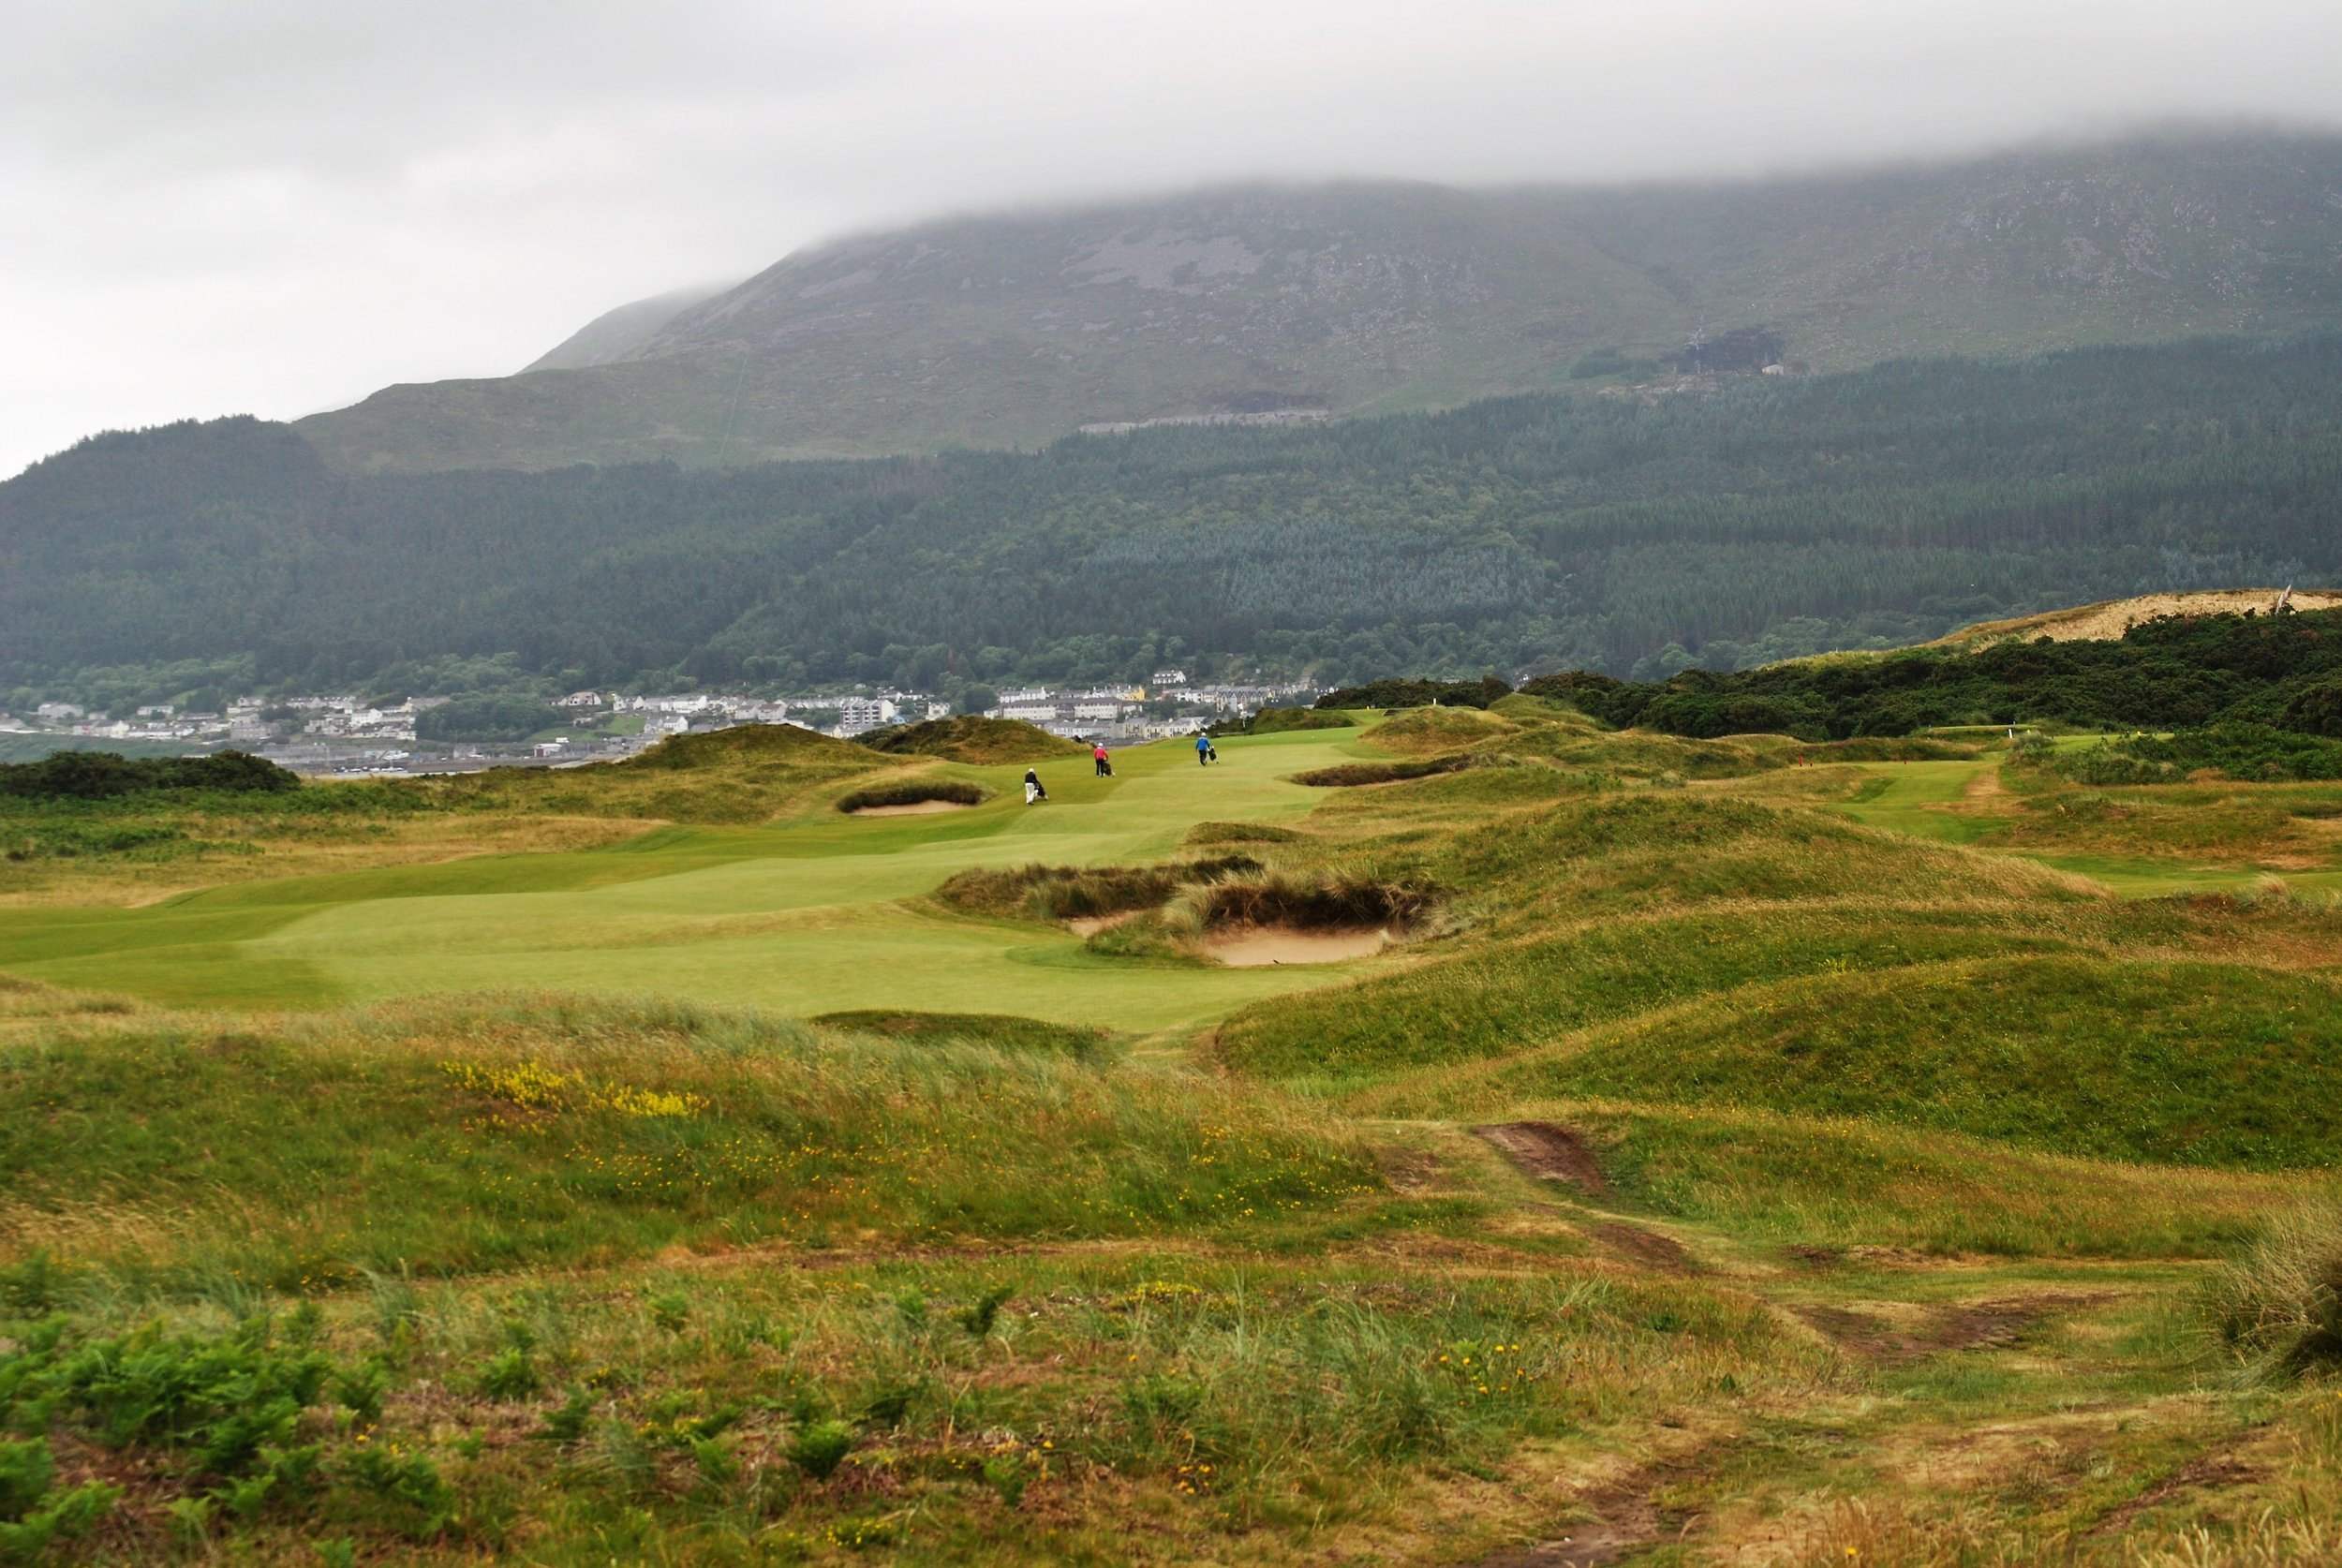 A view of the 8th hole. It is listed as the toughest hole on the course.